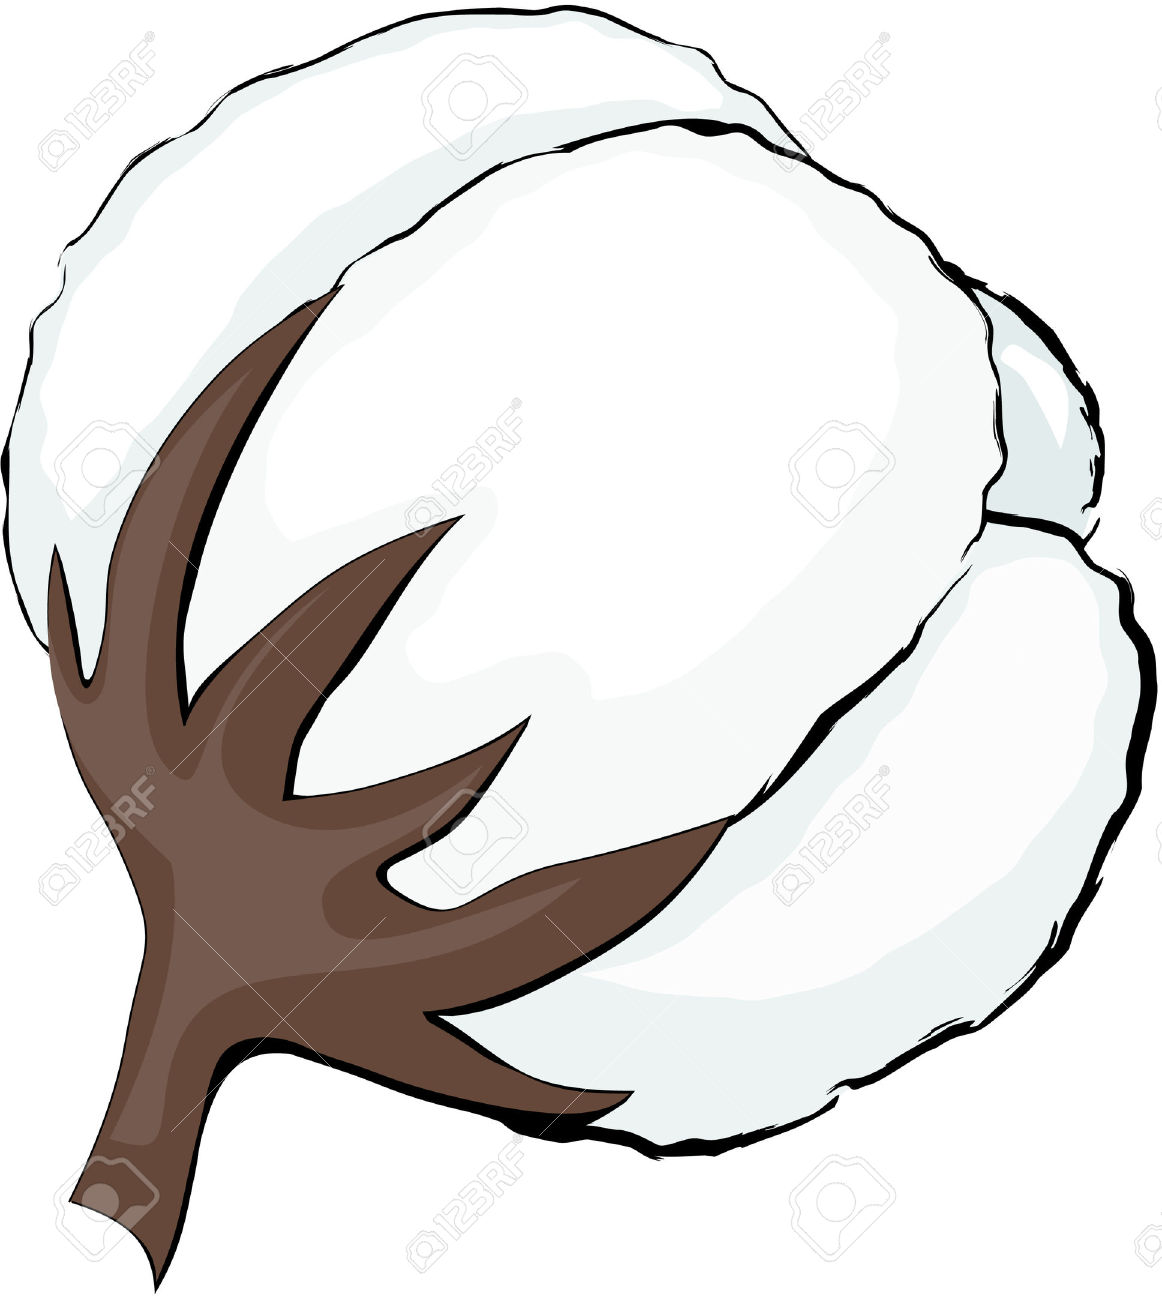 Clipart Of Cotton.